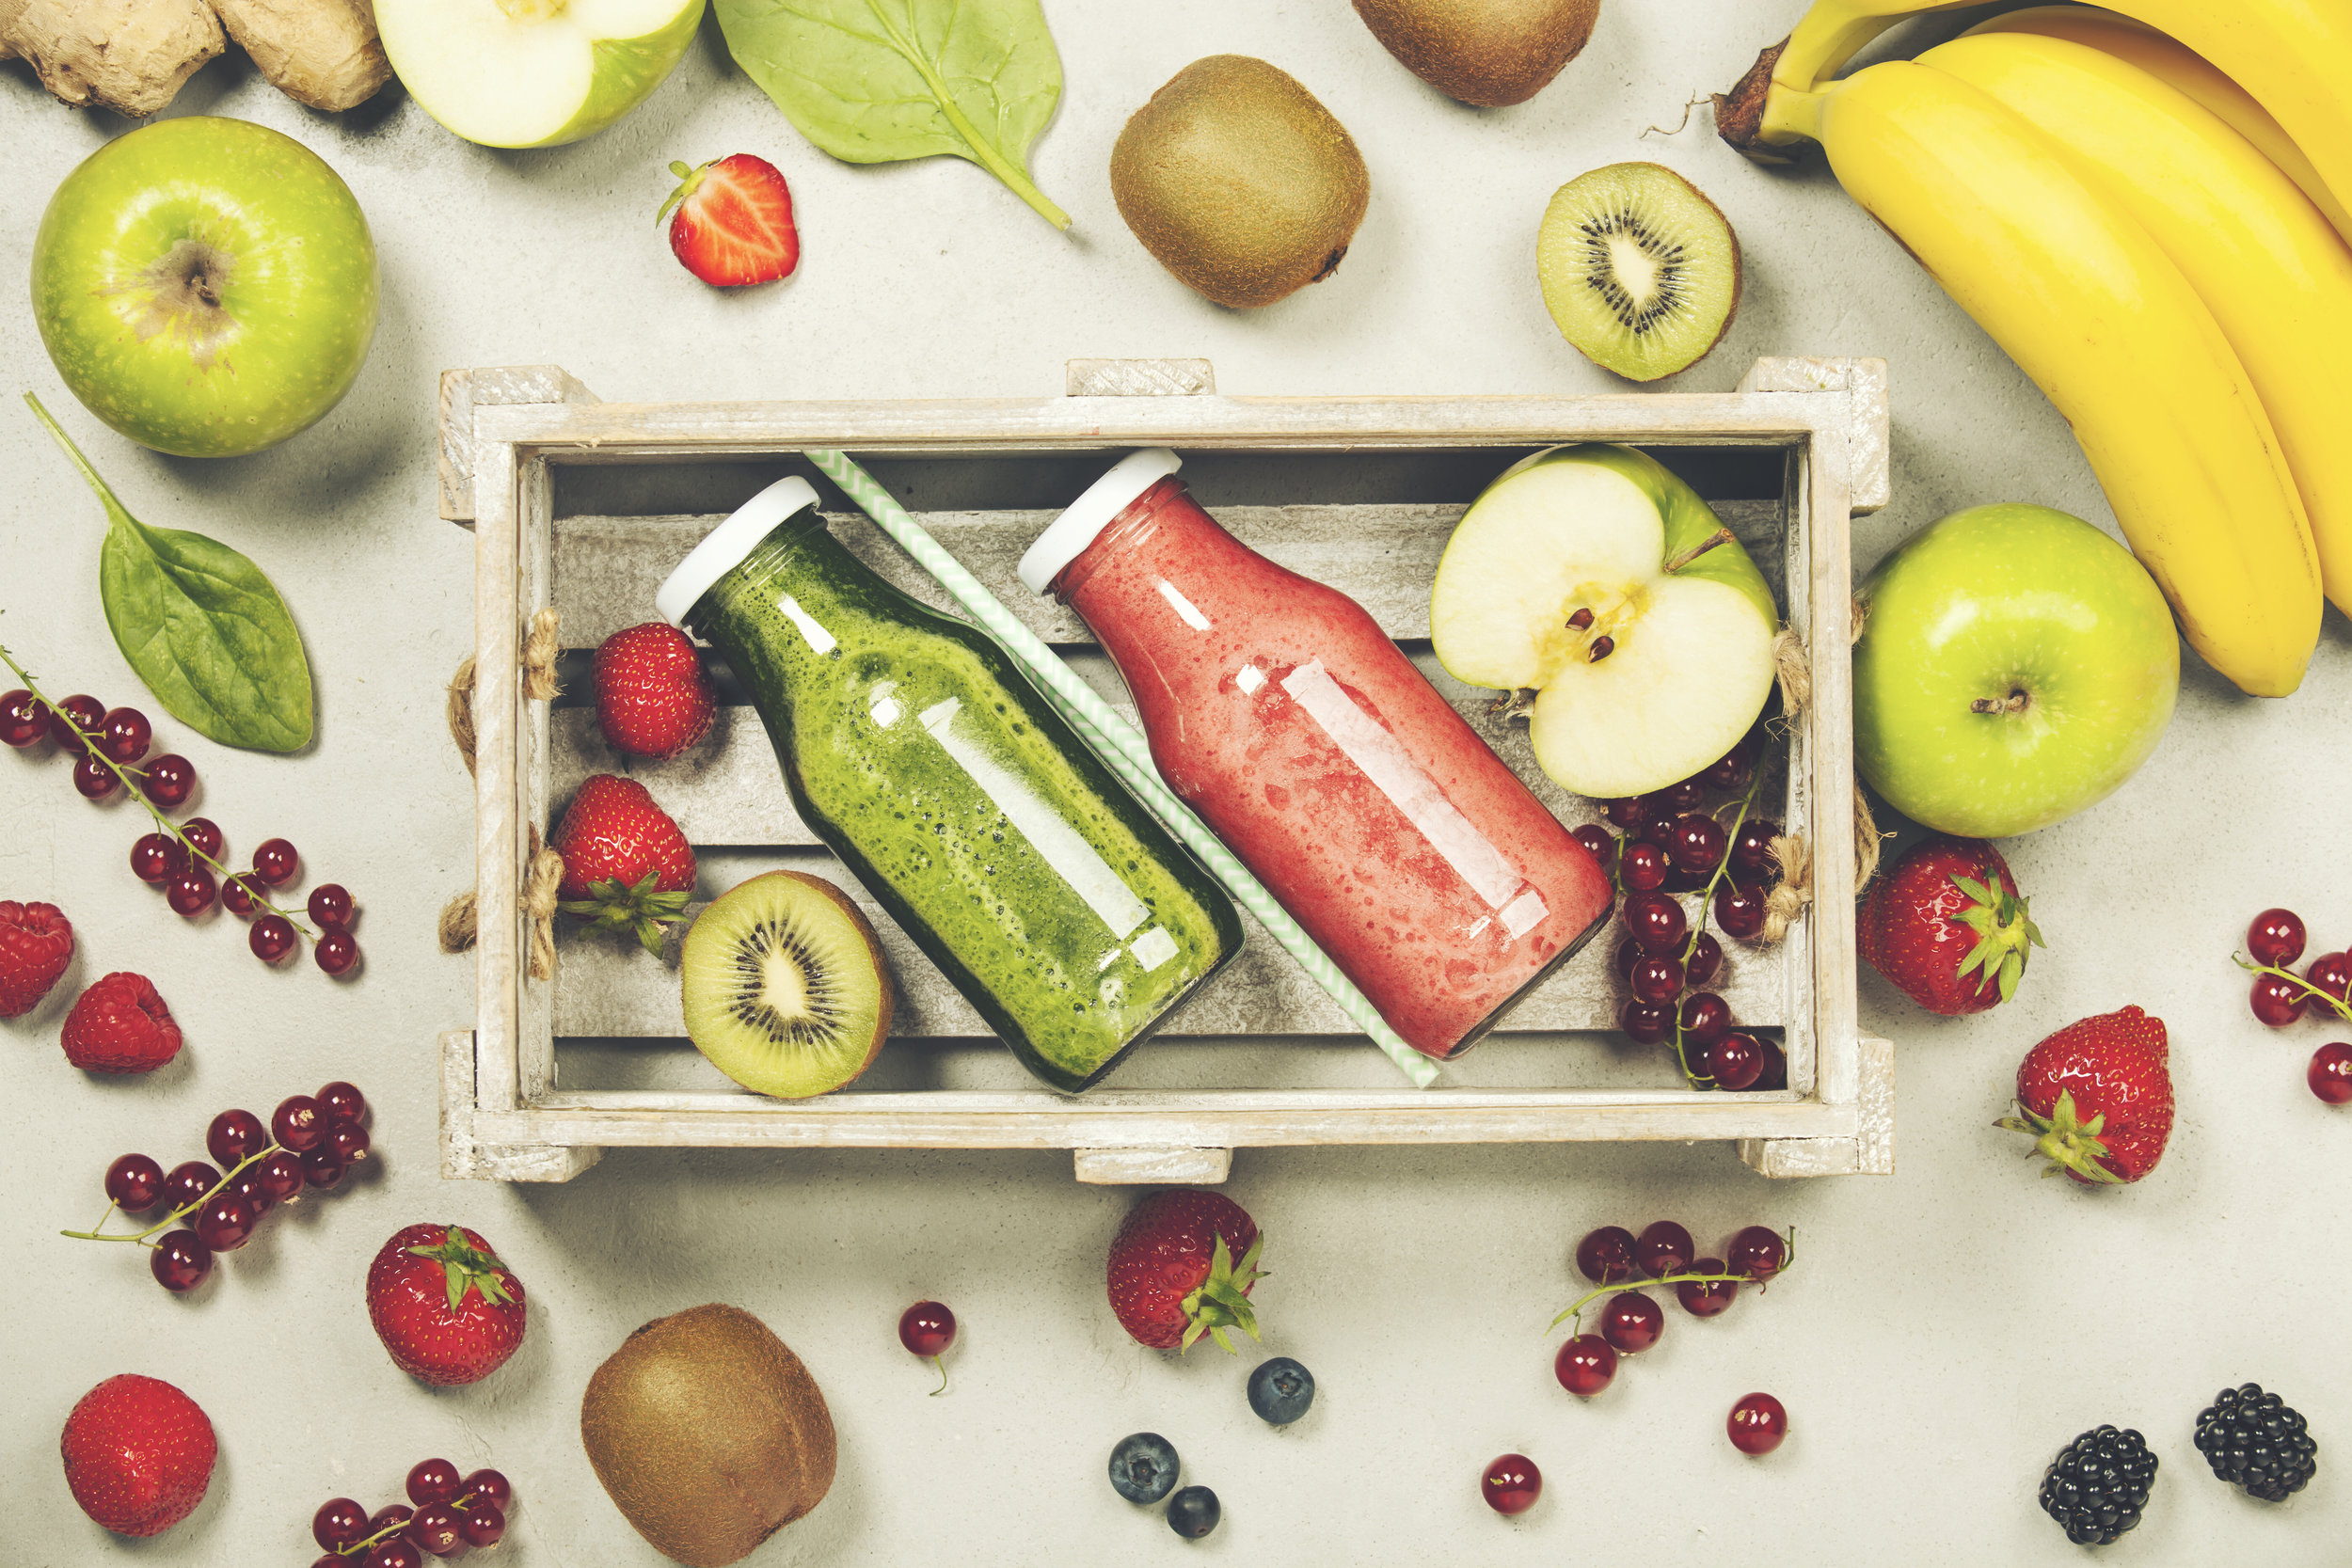 green-and-red-fresh-juices-or-smoothies-PQAN7PY (1).jpg